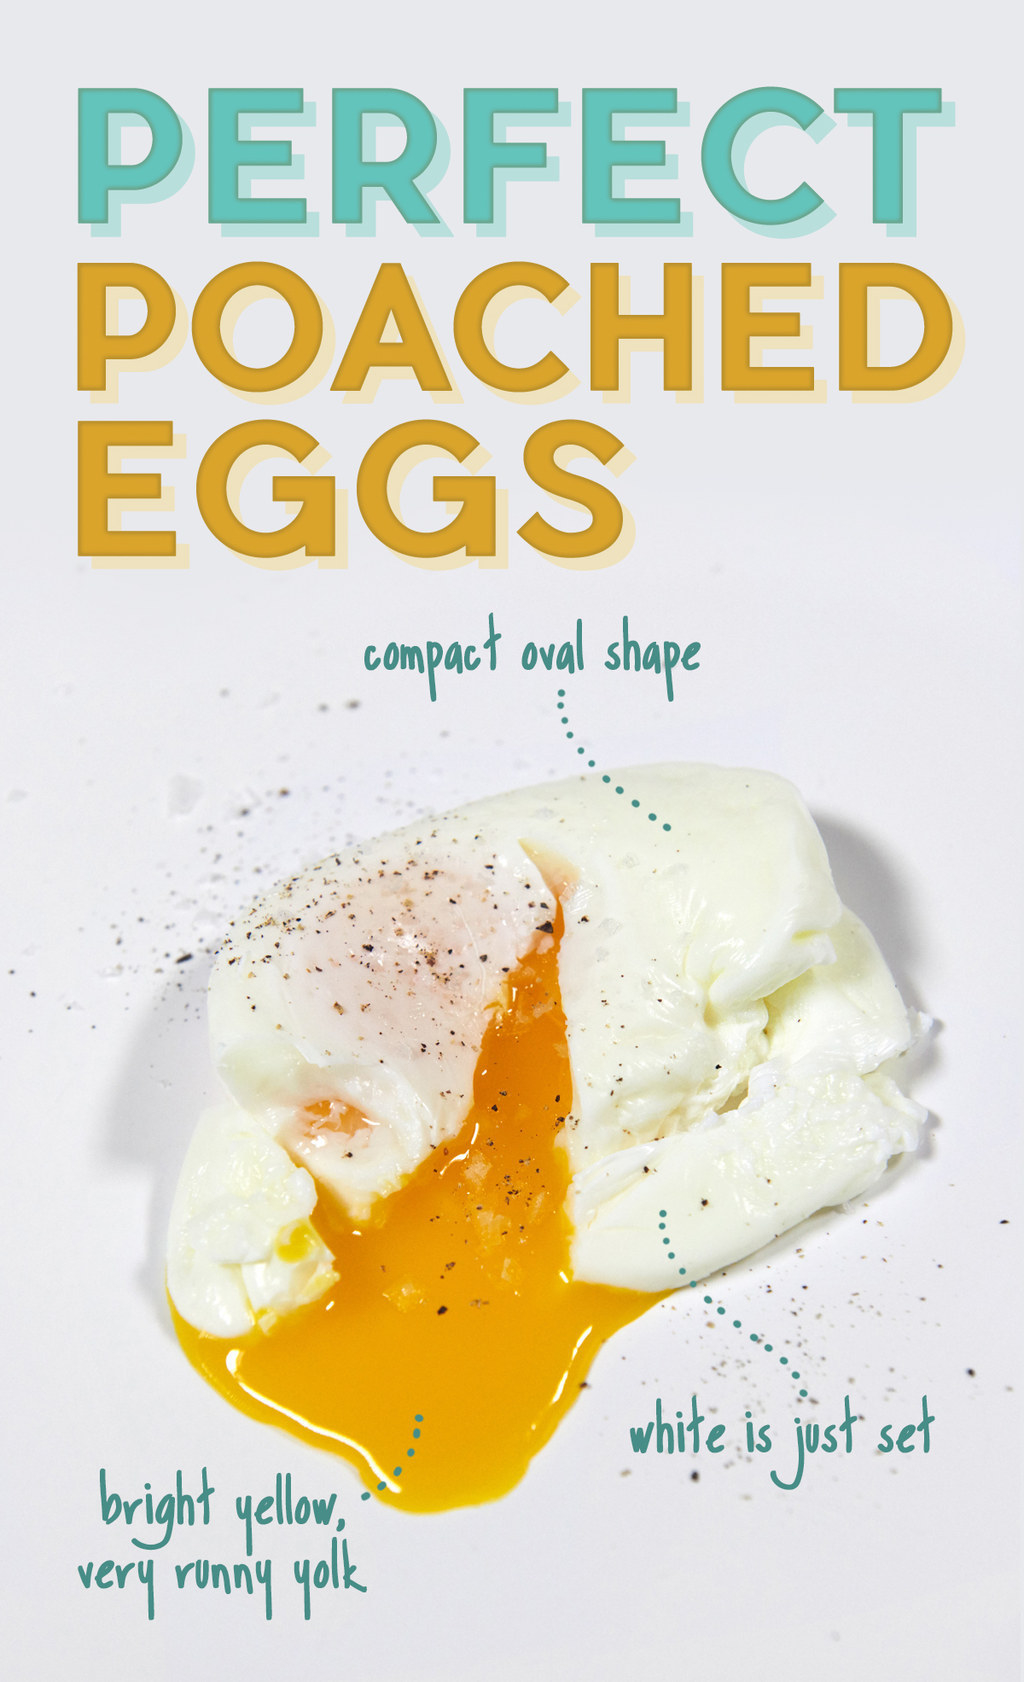 A perfect poached egg, with a compact oval shape, just set whites, and a bright yellow, very runny yolk